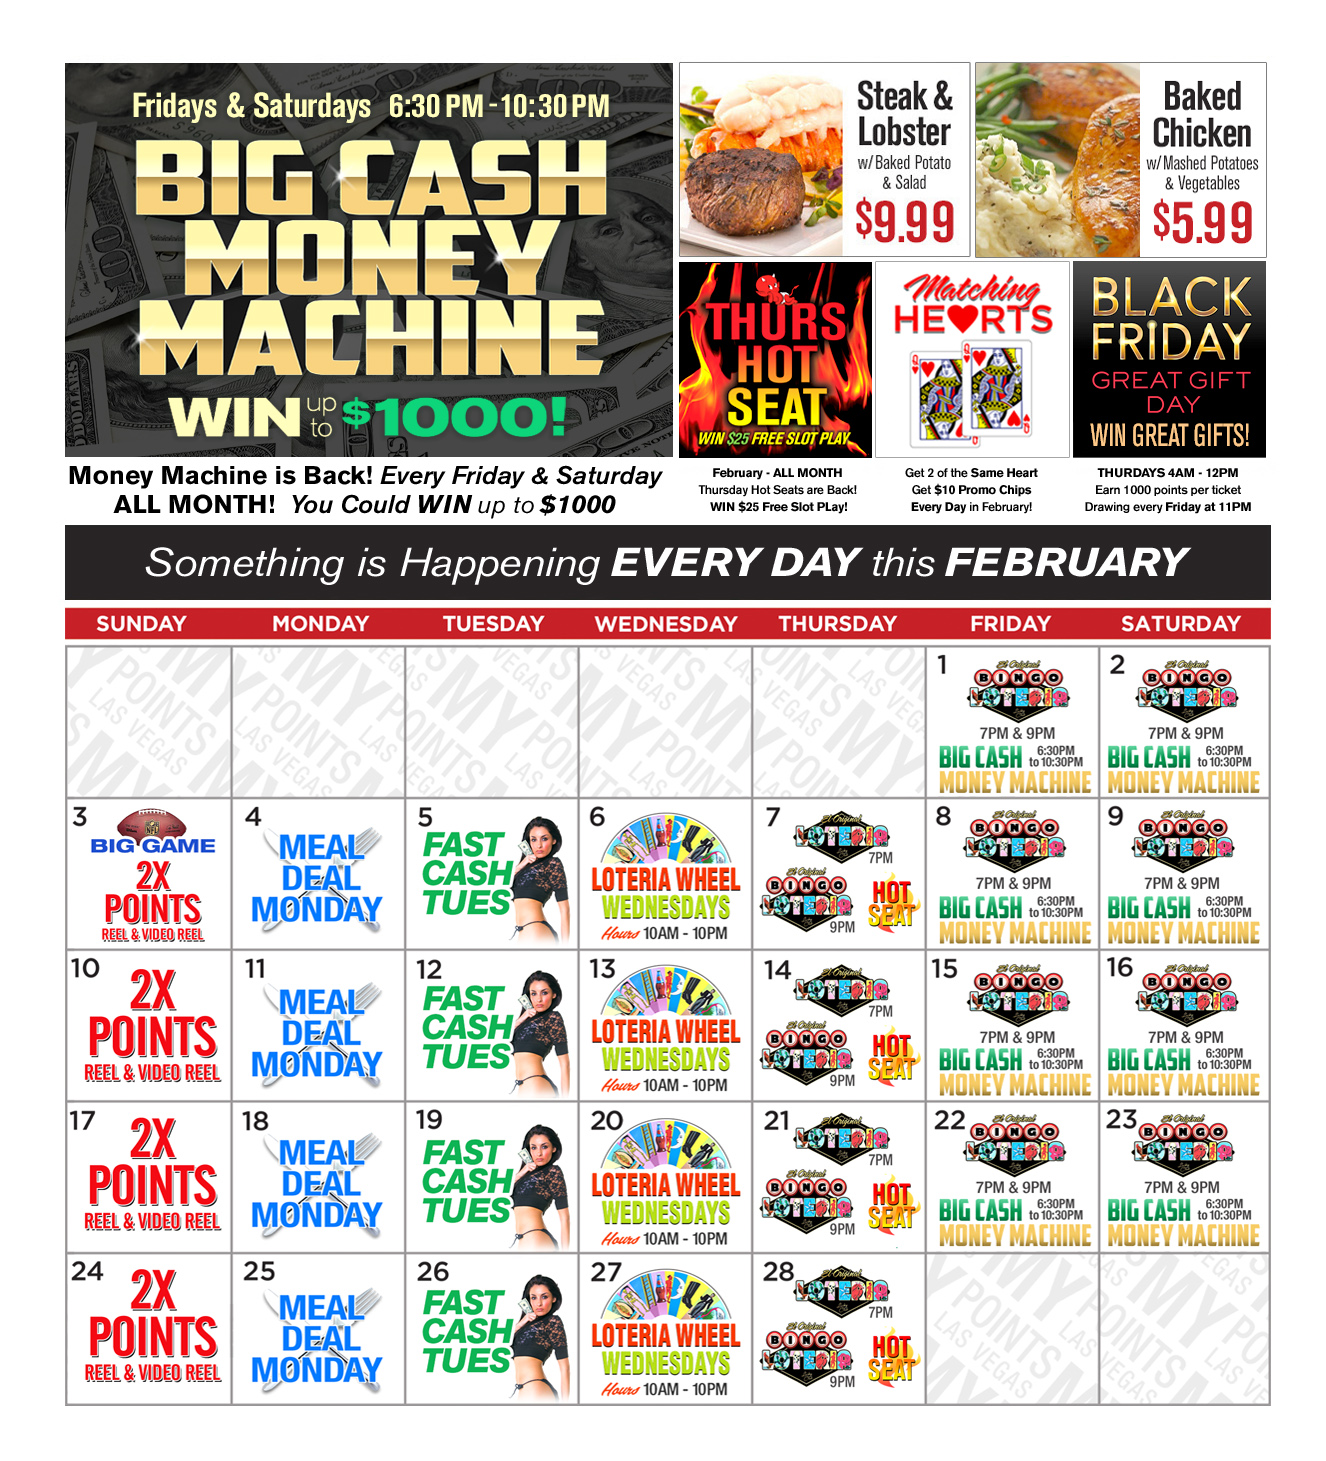 Upcoming Promotions - February 2019